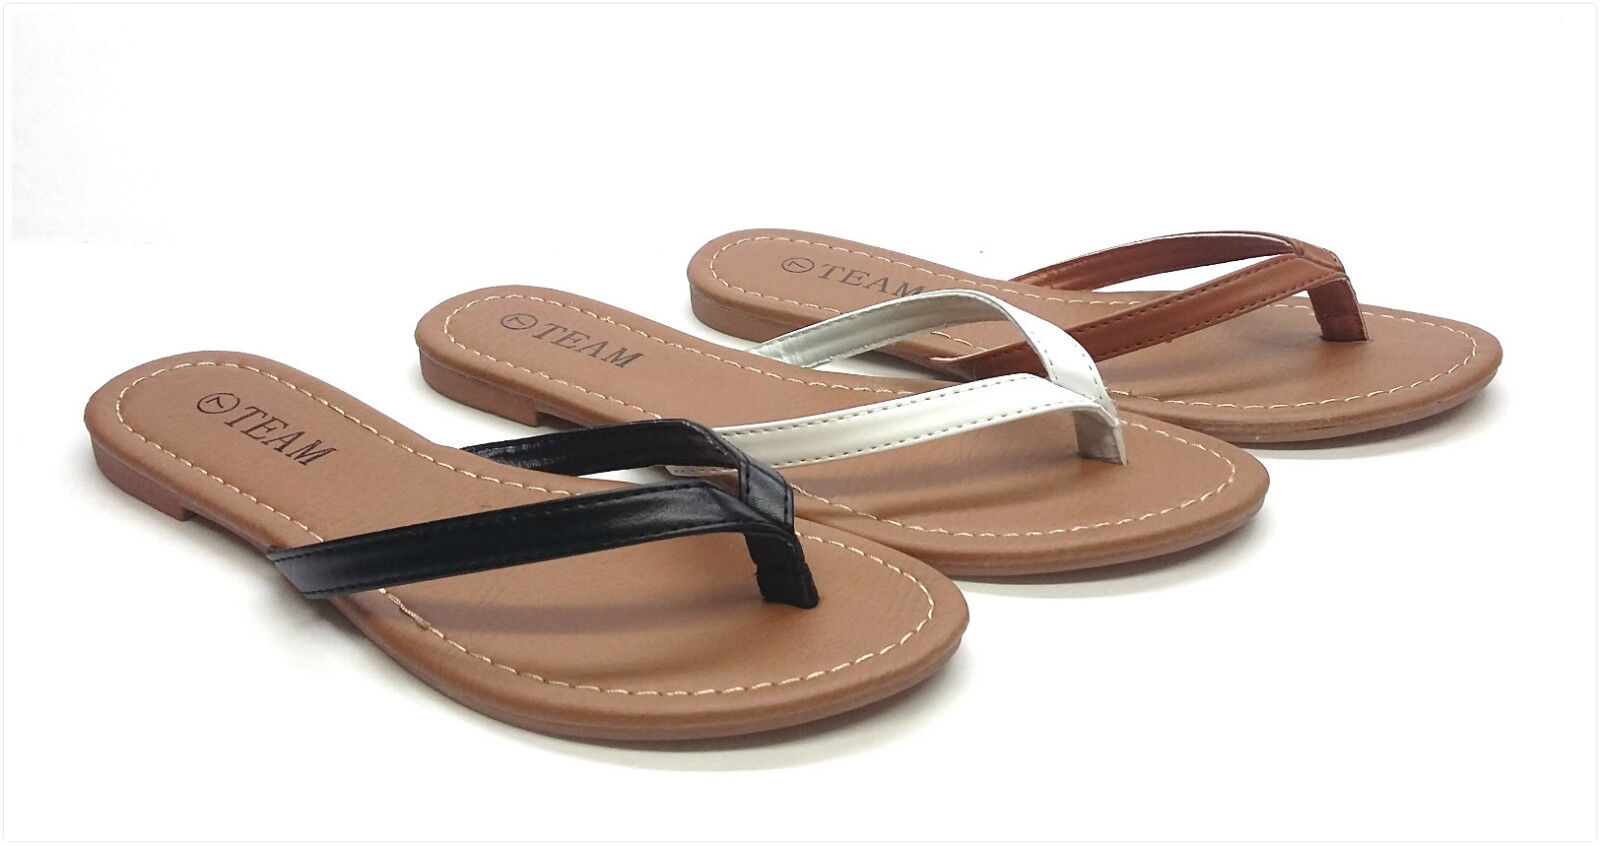 Men/Women New Flop Women's Fashion  Flip Flop New Sandal Shoes Size 5 - 10 High security a variety of Very good color GV271 3975a2